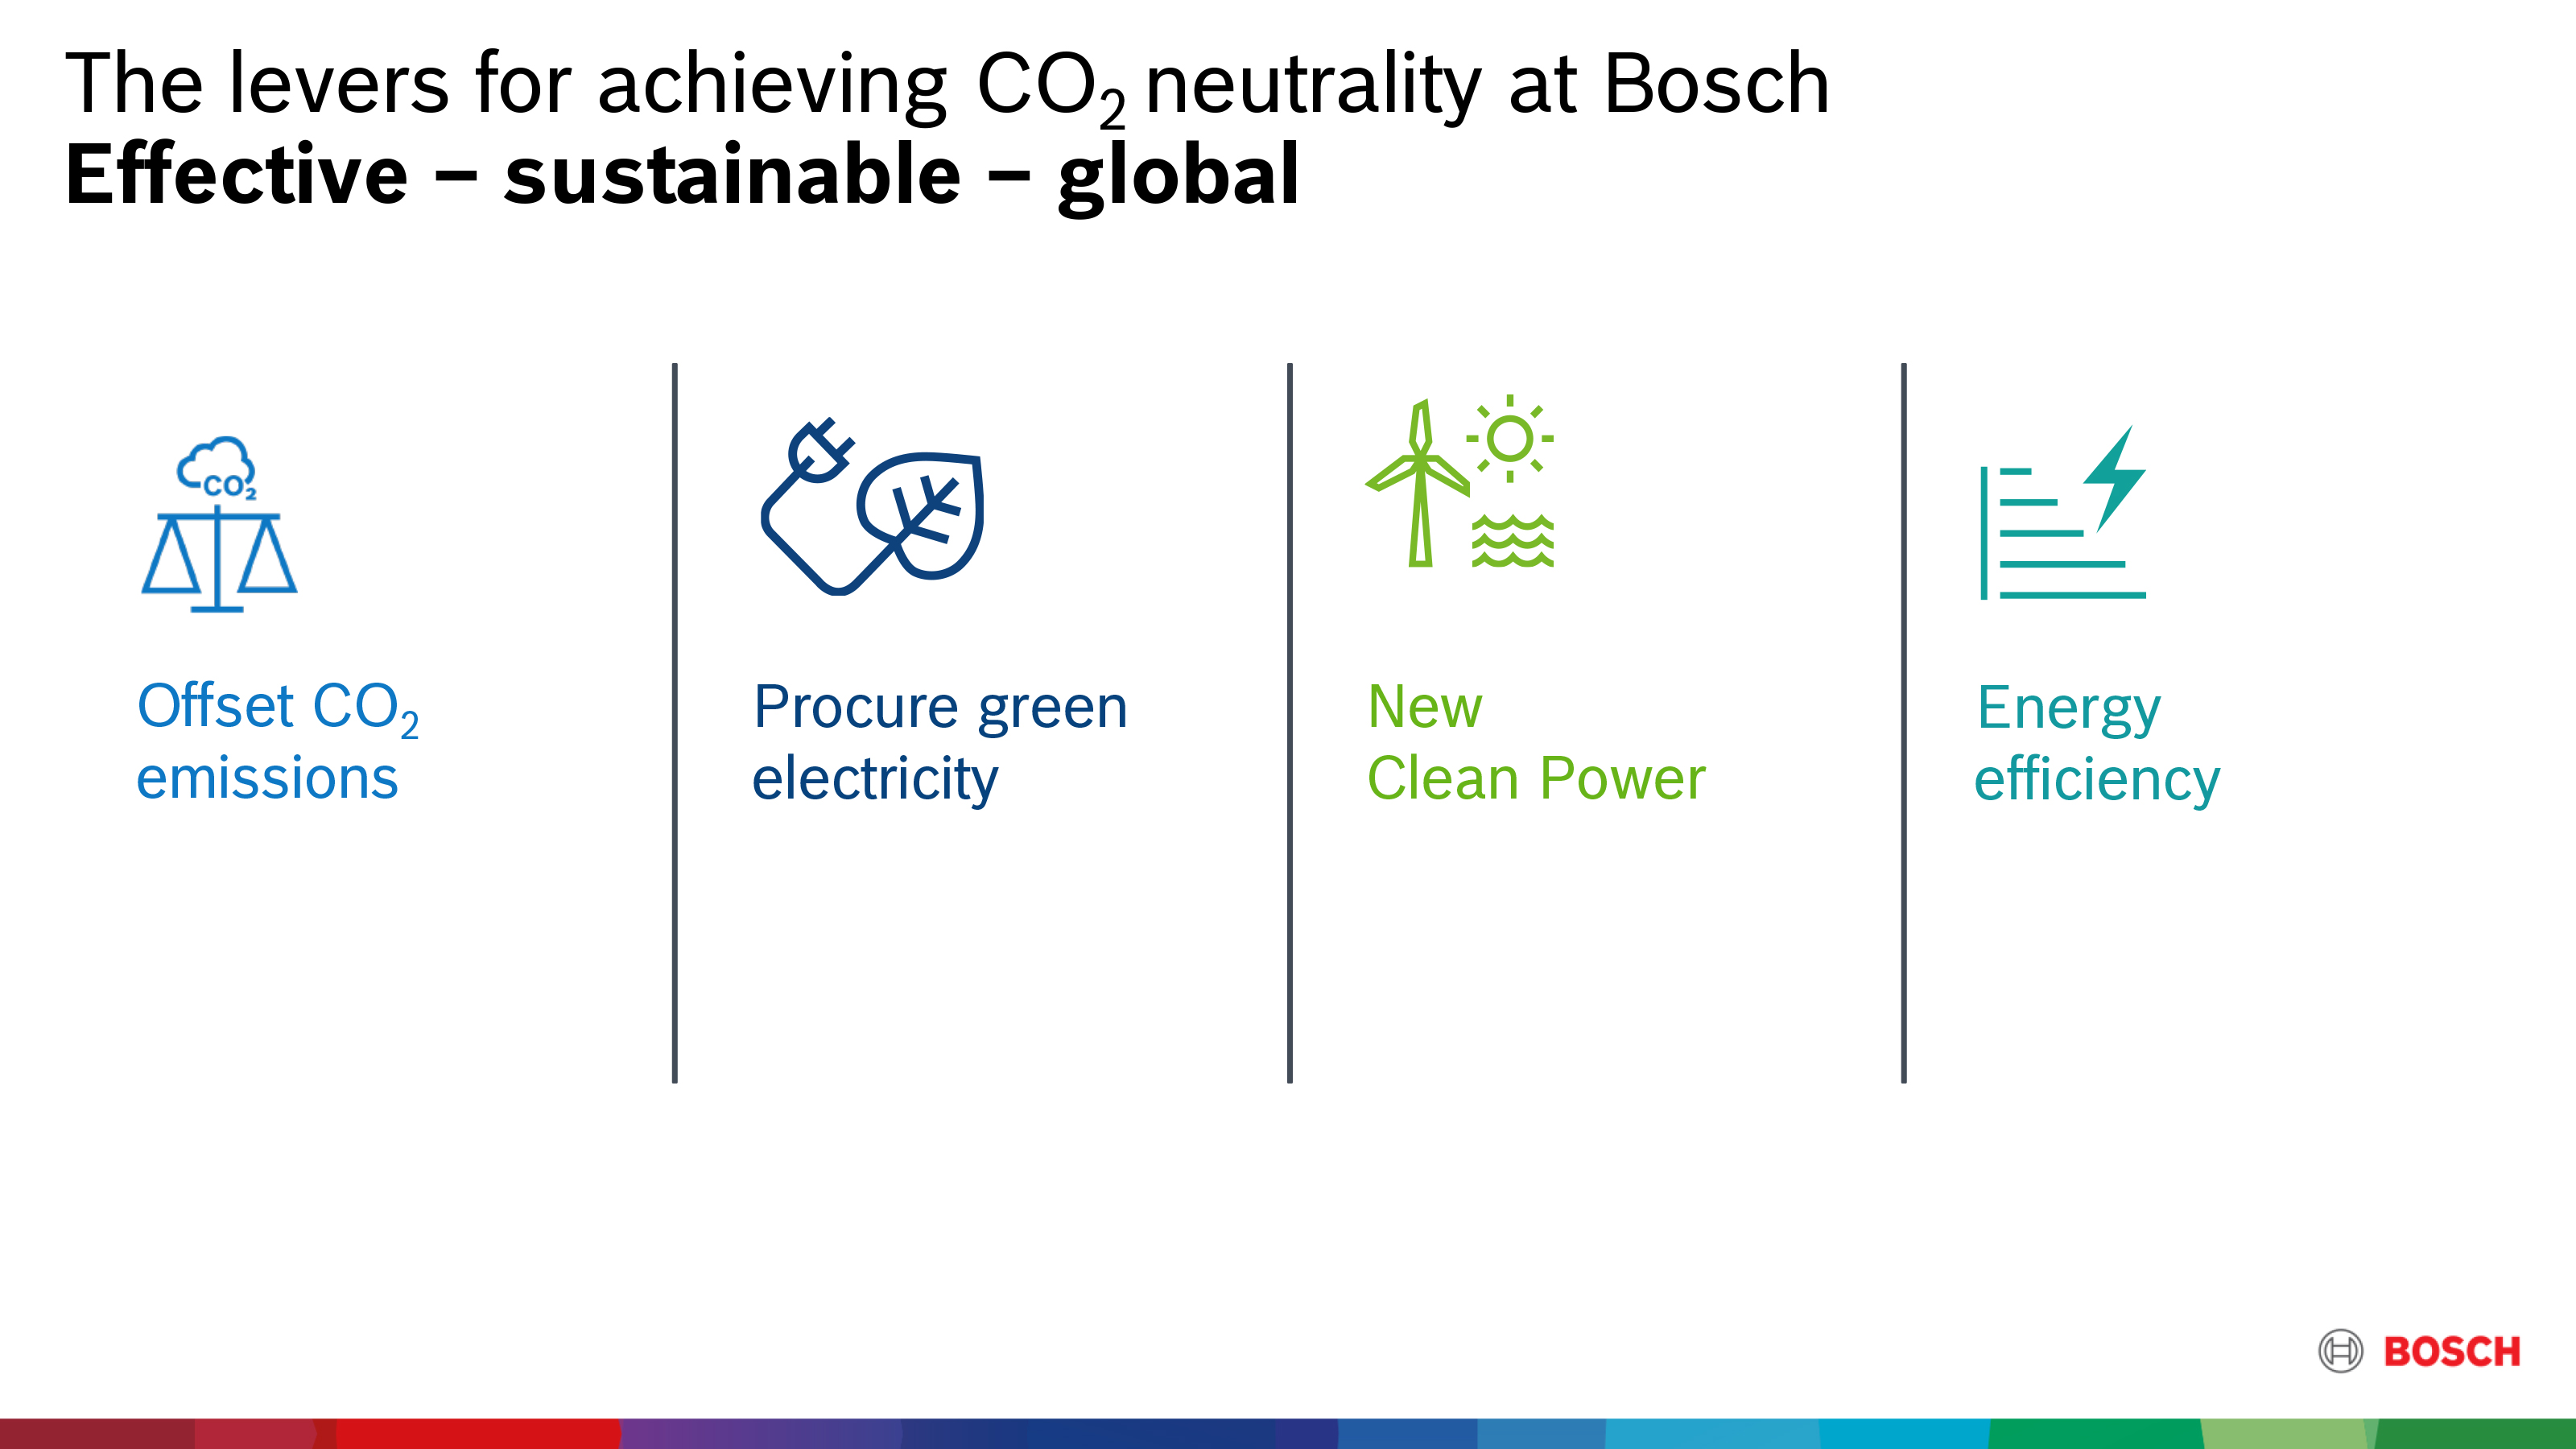 The levers for achieving CO₂ neutrality at Bosch.